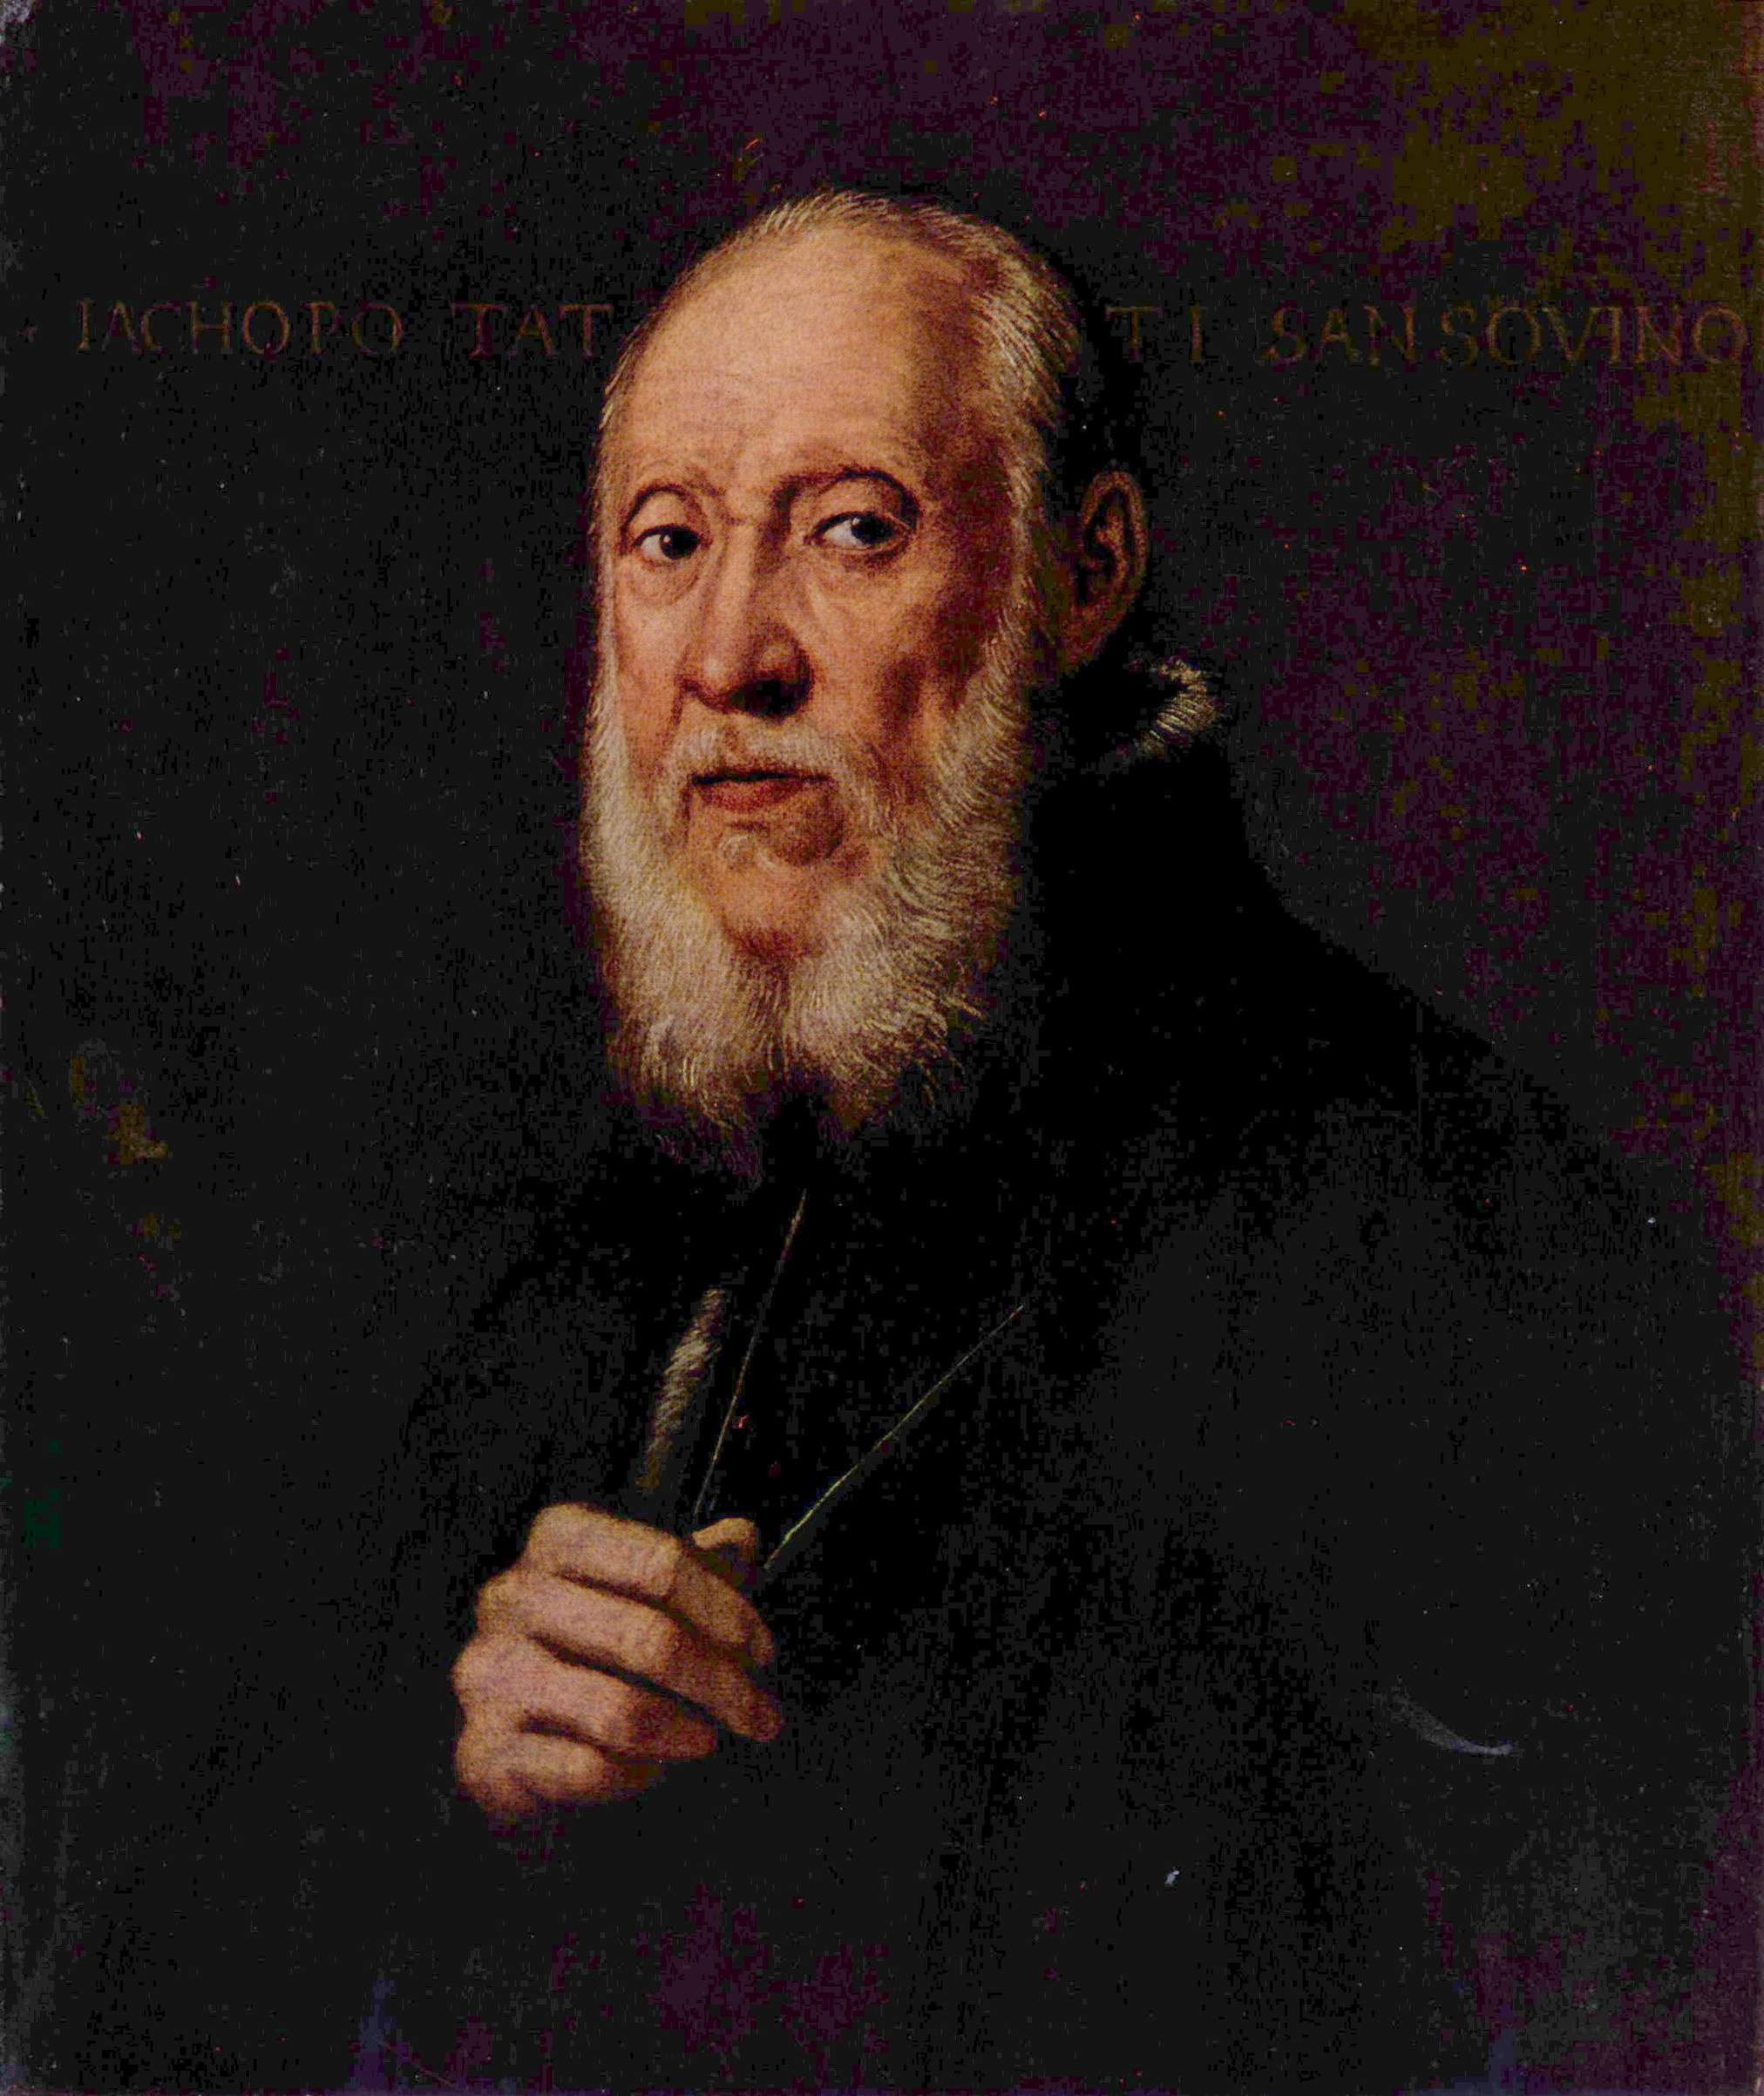 Jacopo Sansovino (1486-1570) - the sculptor and architect of the High Renaissance, a portrait by Tintoretto.